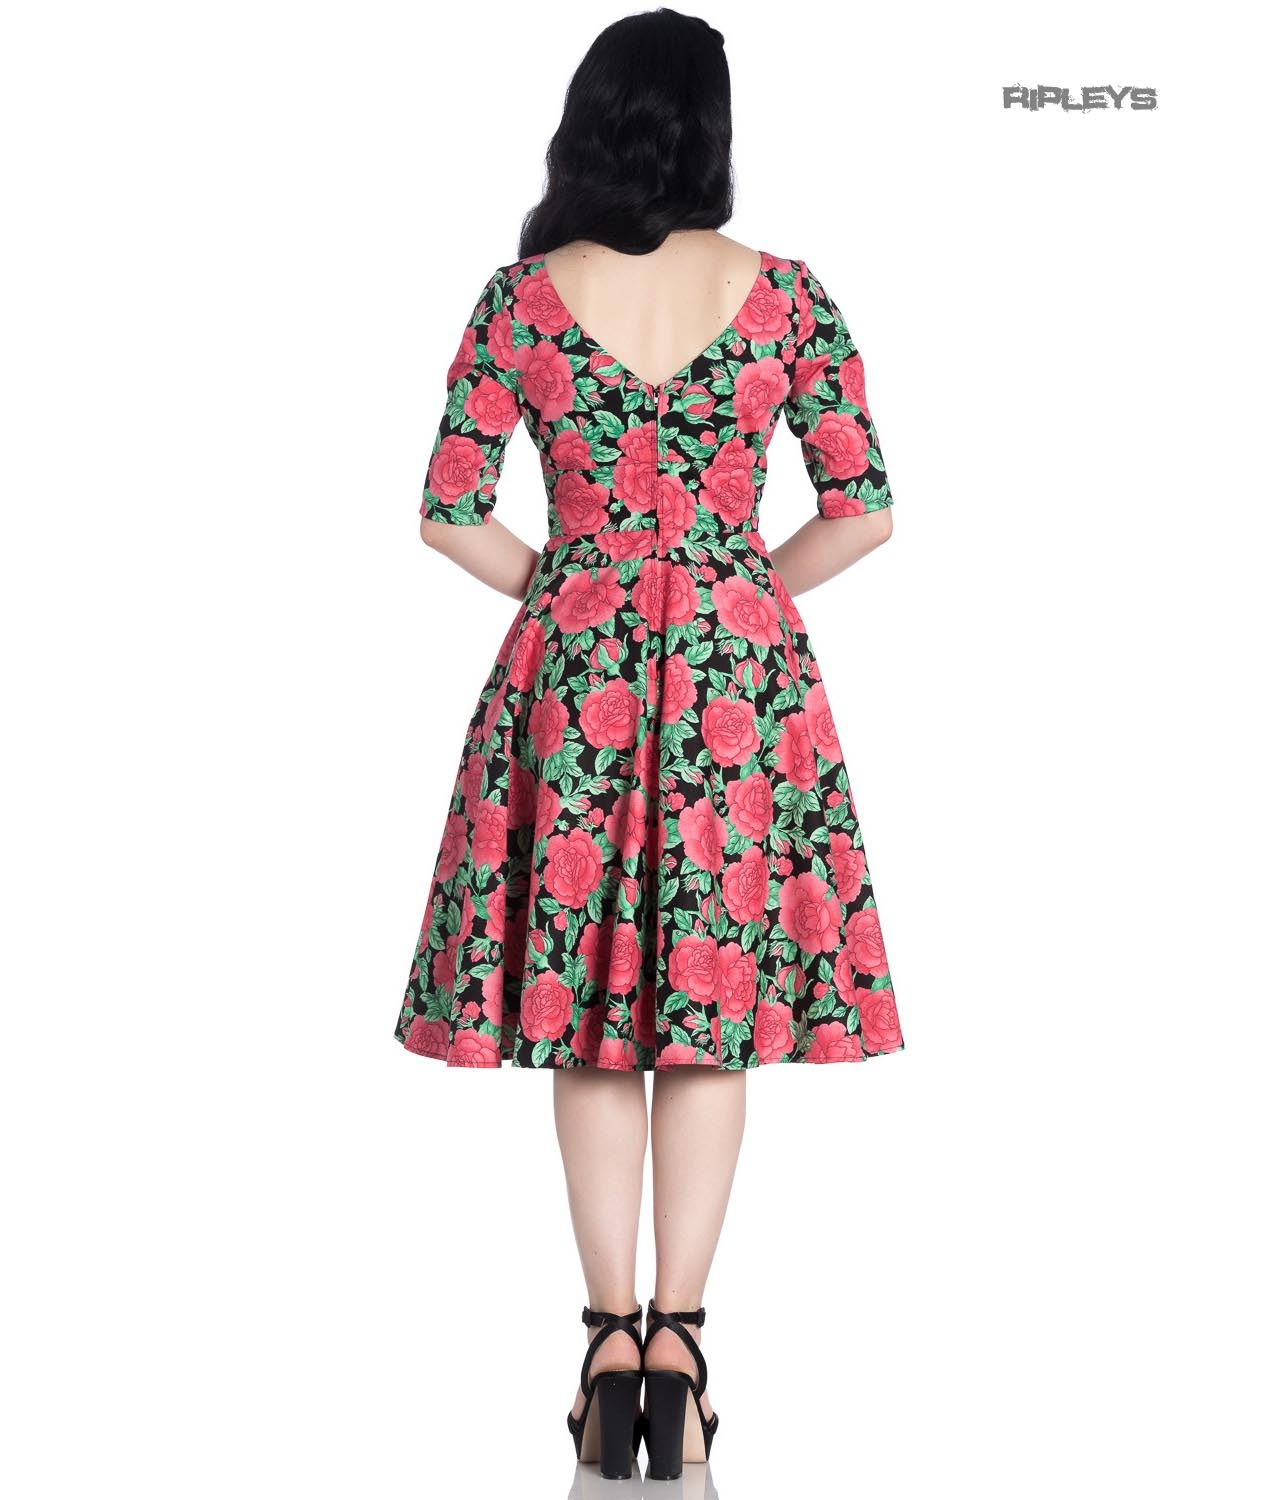 Hell-Bunny-40s-50s-Black-Pin-Up-Vintage-Dress-DARCY-Pink-Roses-All-Sizes thumbnail 24